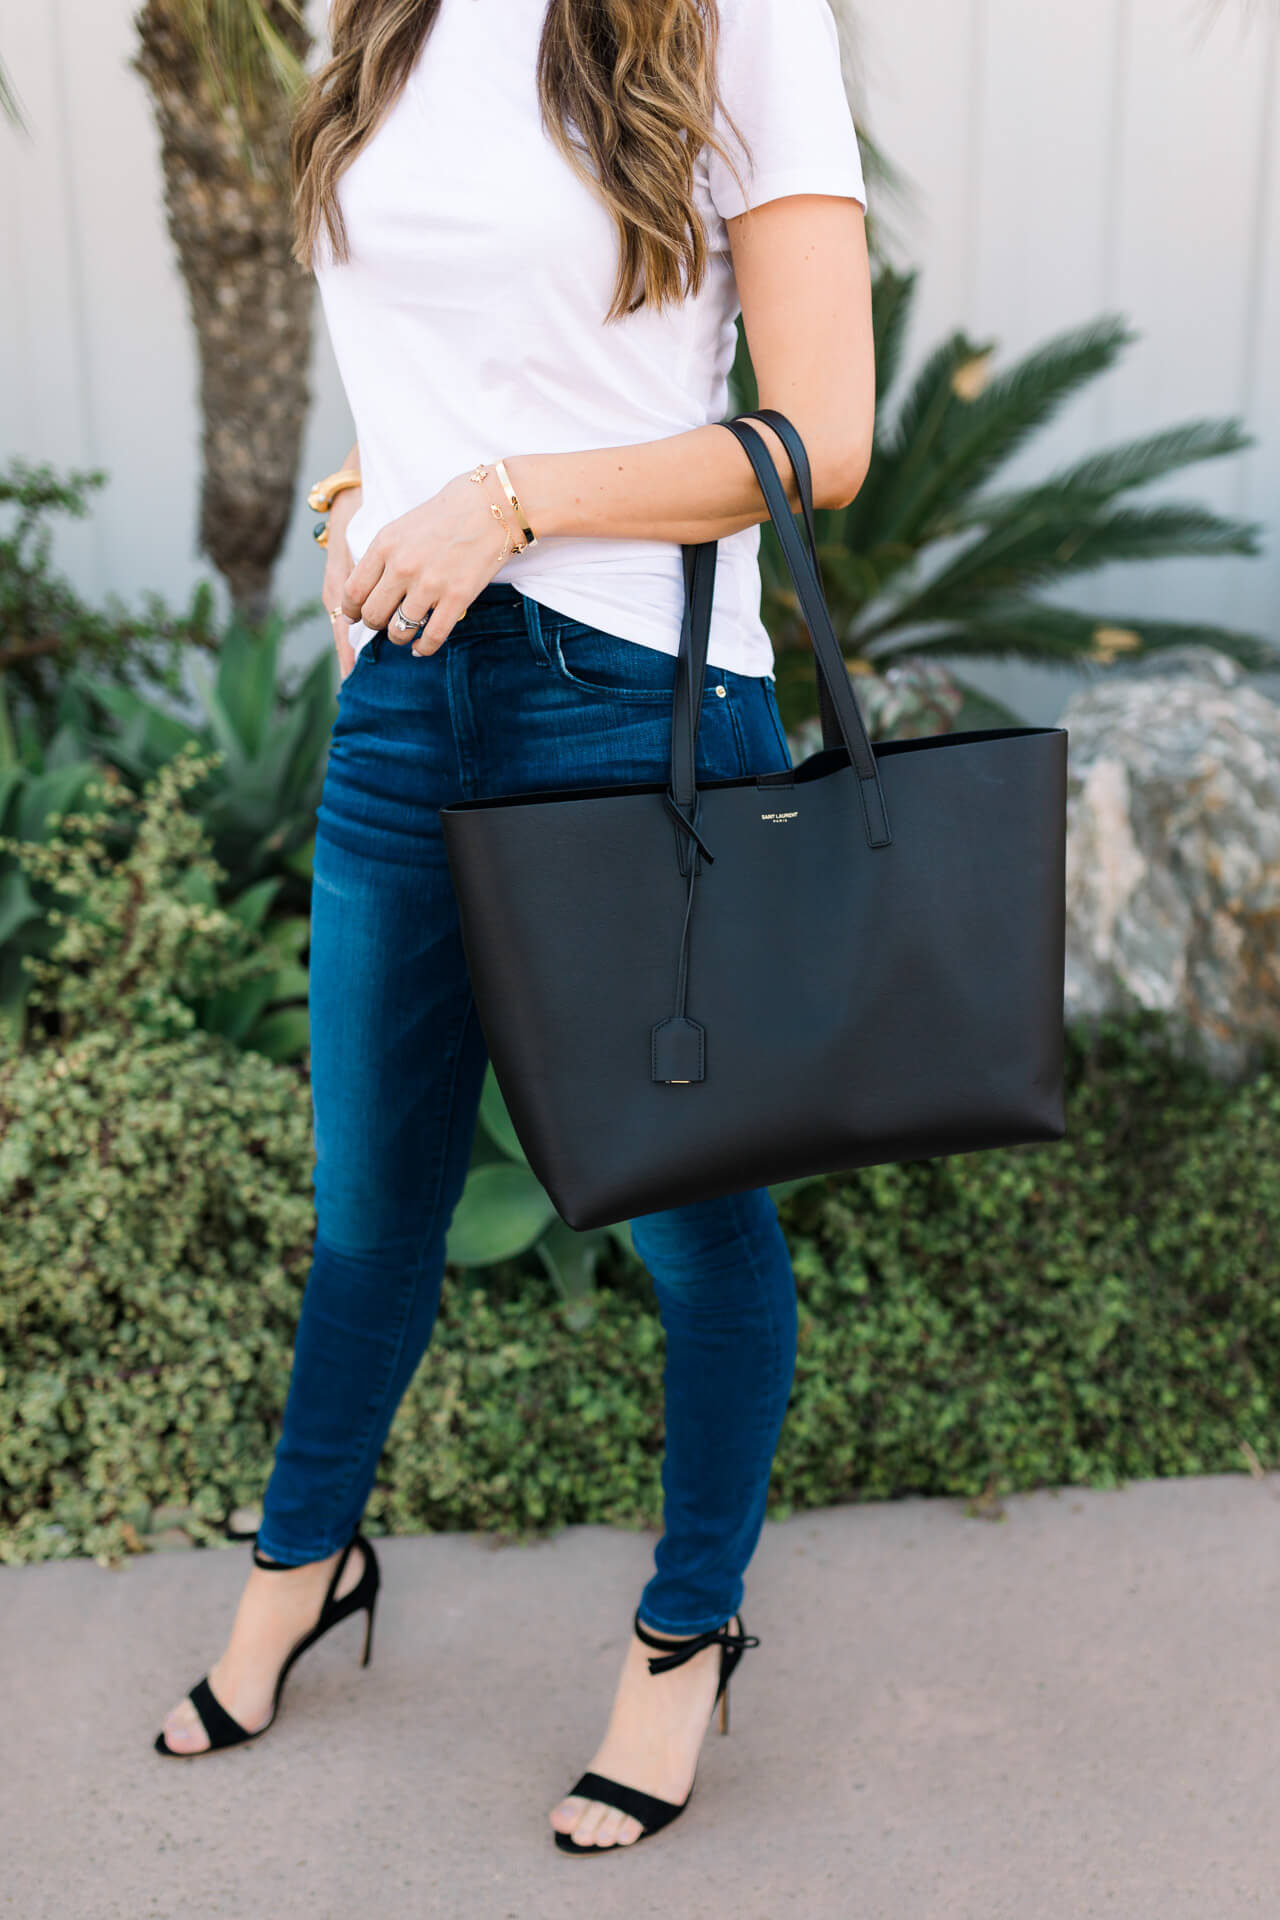 most flattering jeans from Frame with Saint Laurent tote bag - M Loves M Los Angeles and Orange County fashion and lifestyle blogger @marmar